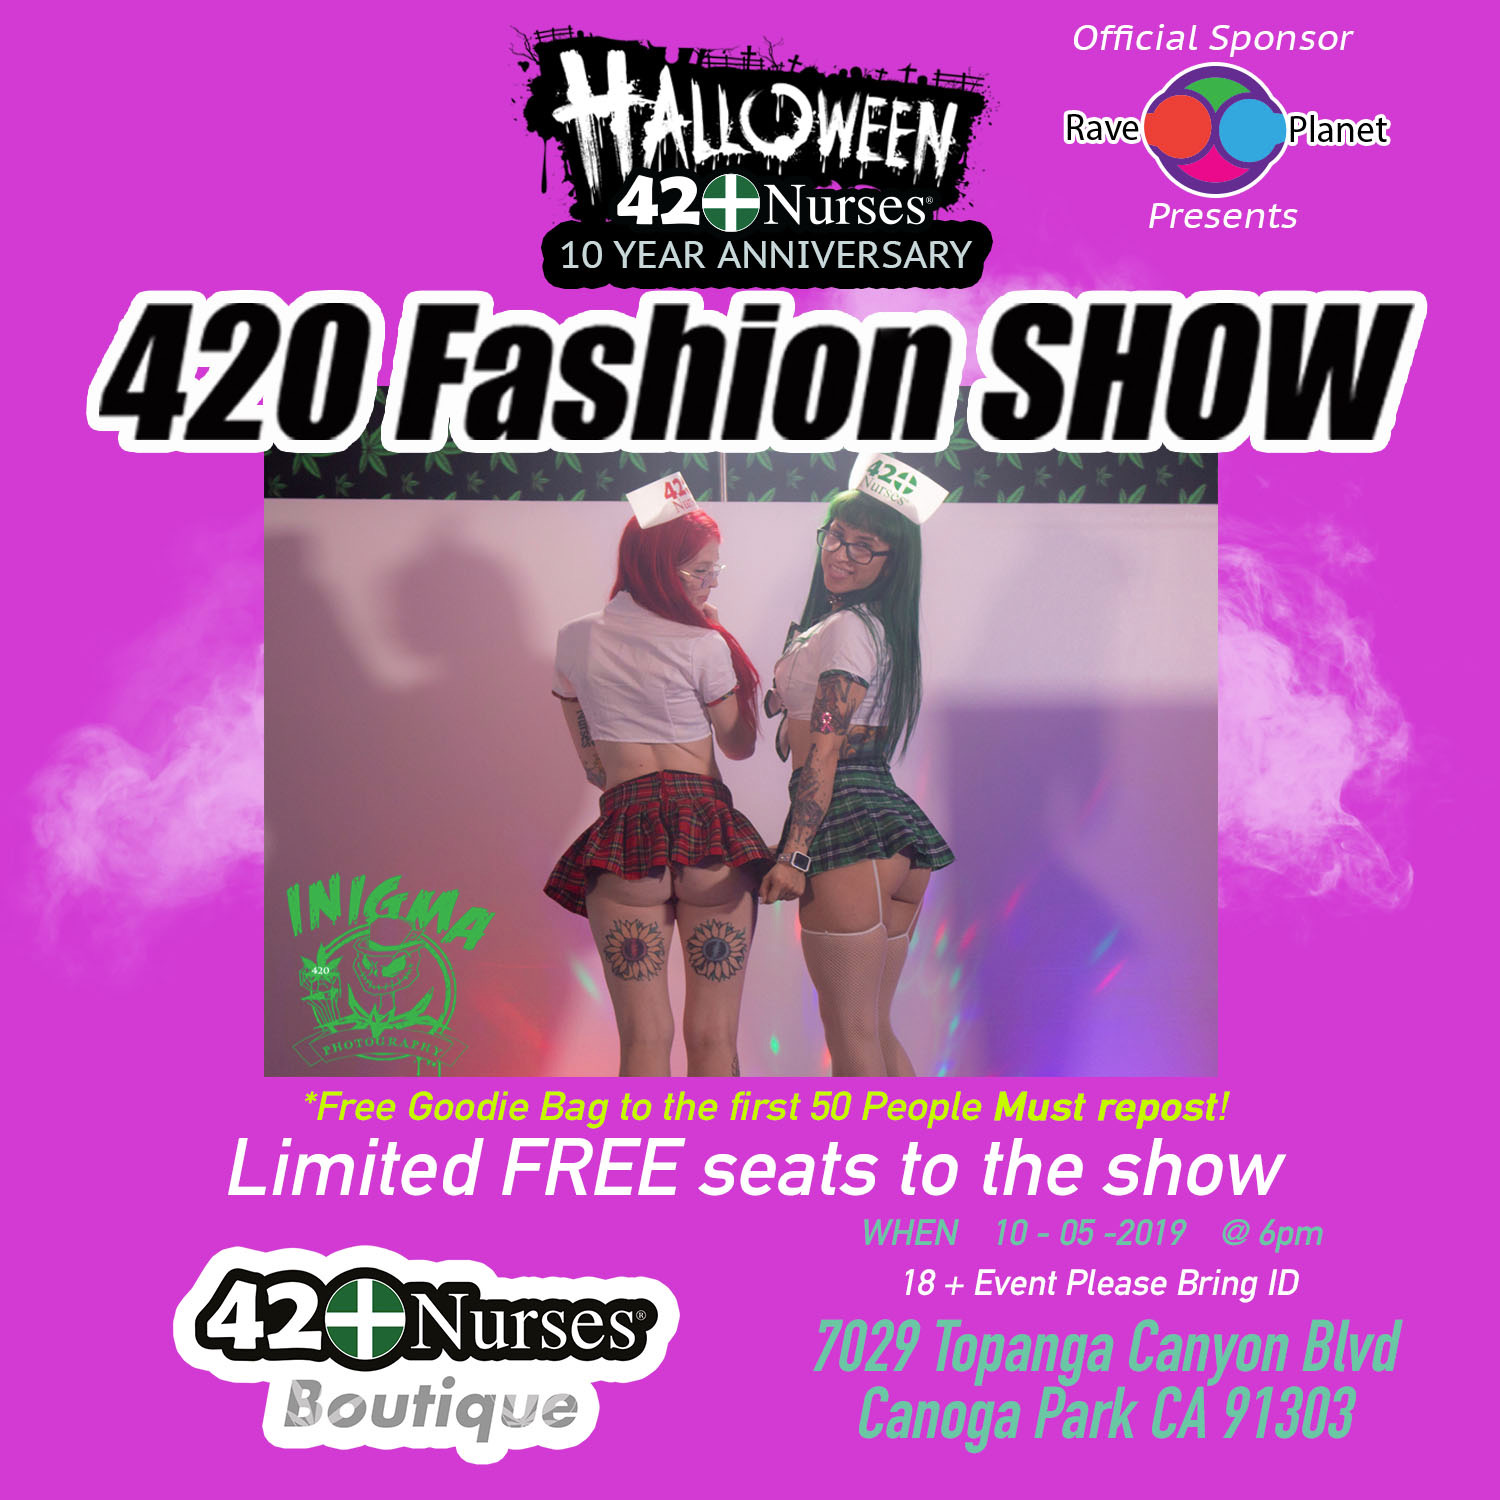 FREE HALLOWEEN 420FASHION SHOW AT THE BOUTIQUE